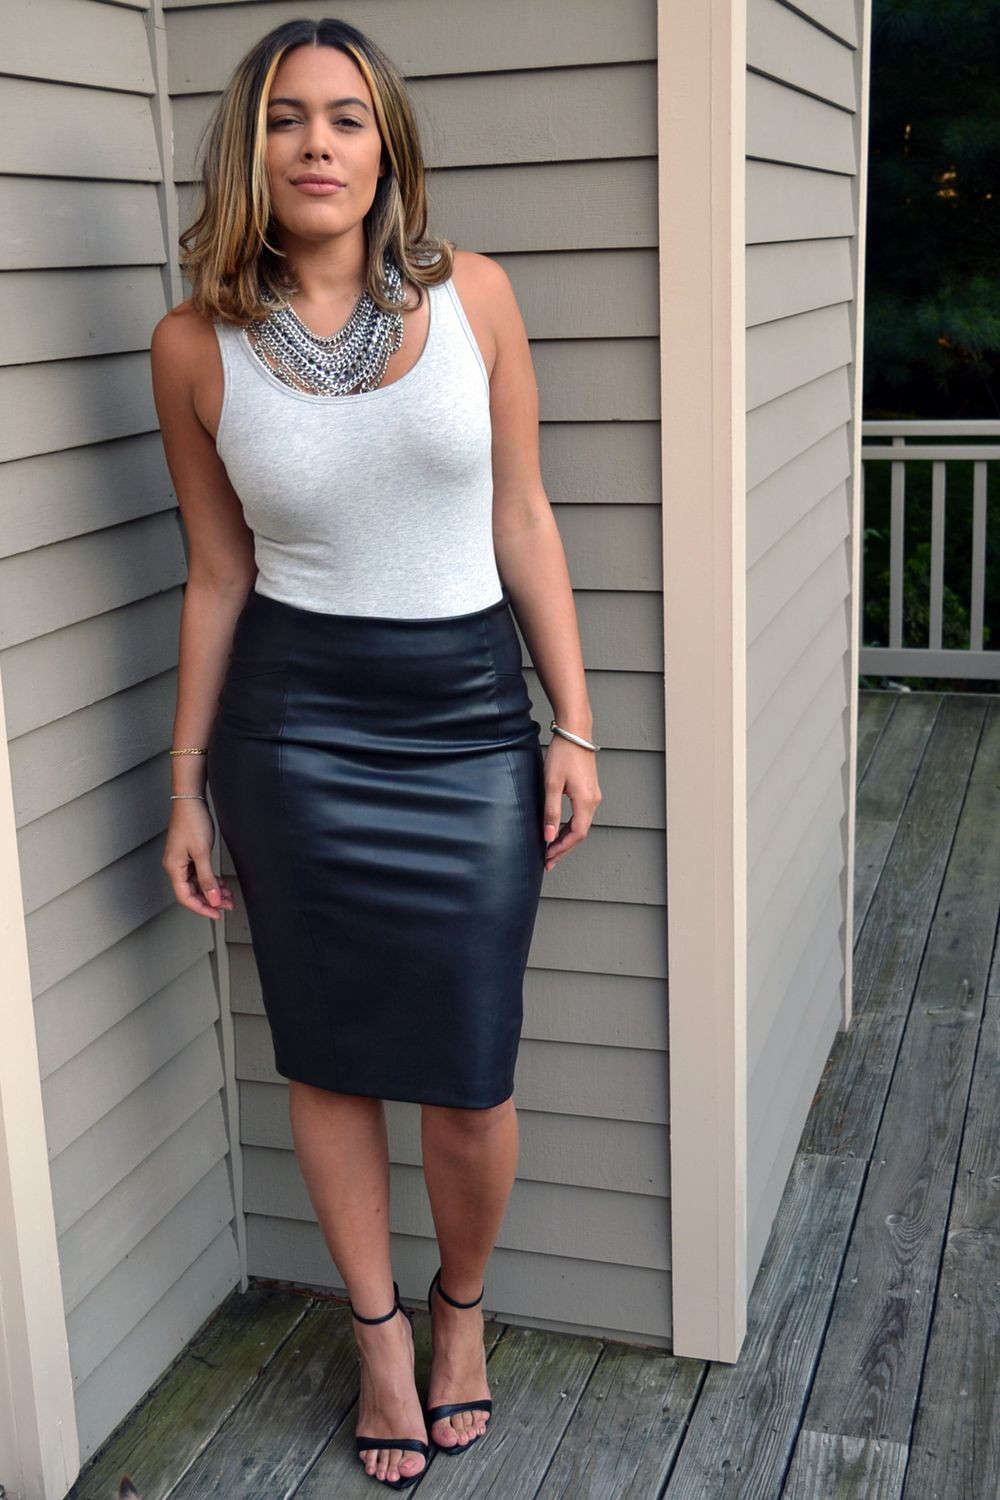 Wearing A Leather Skirt